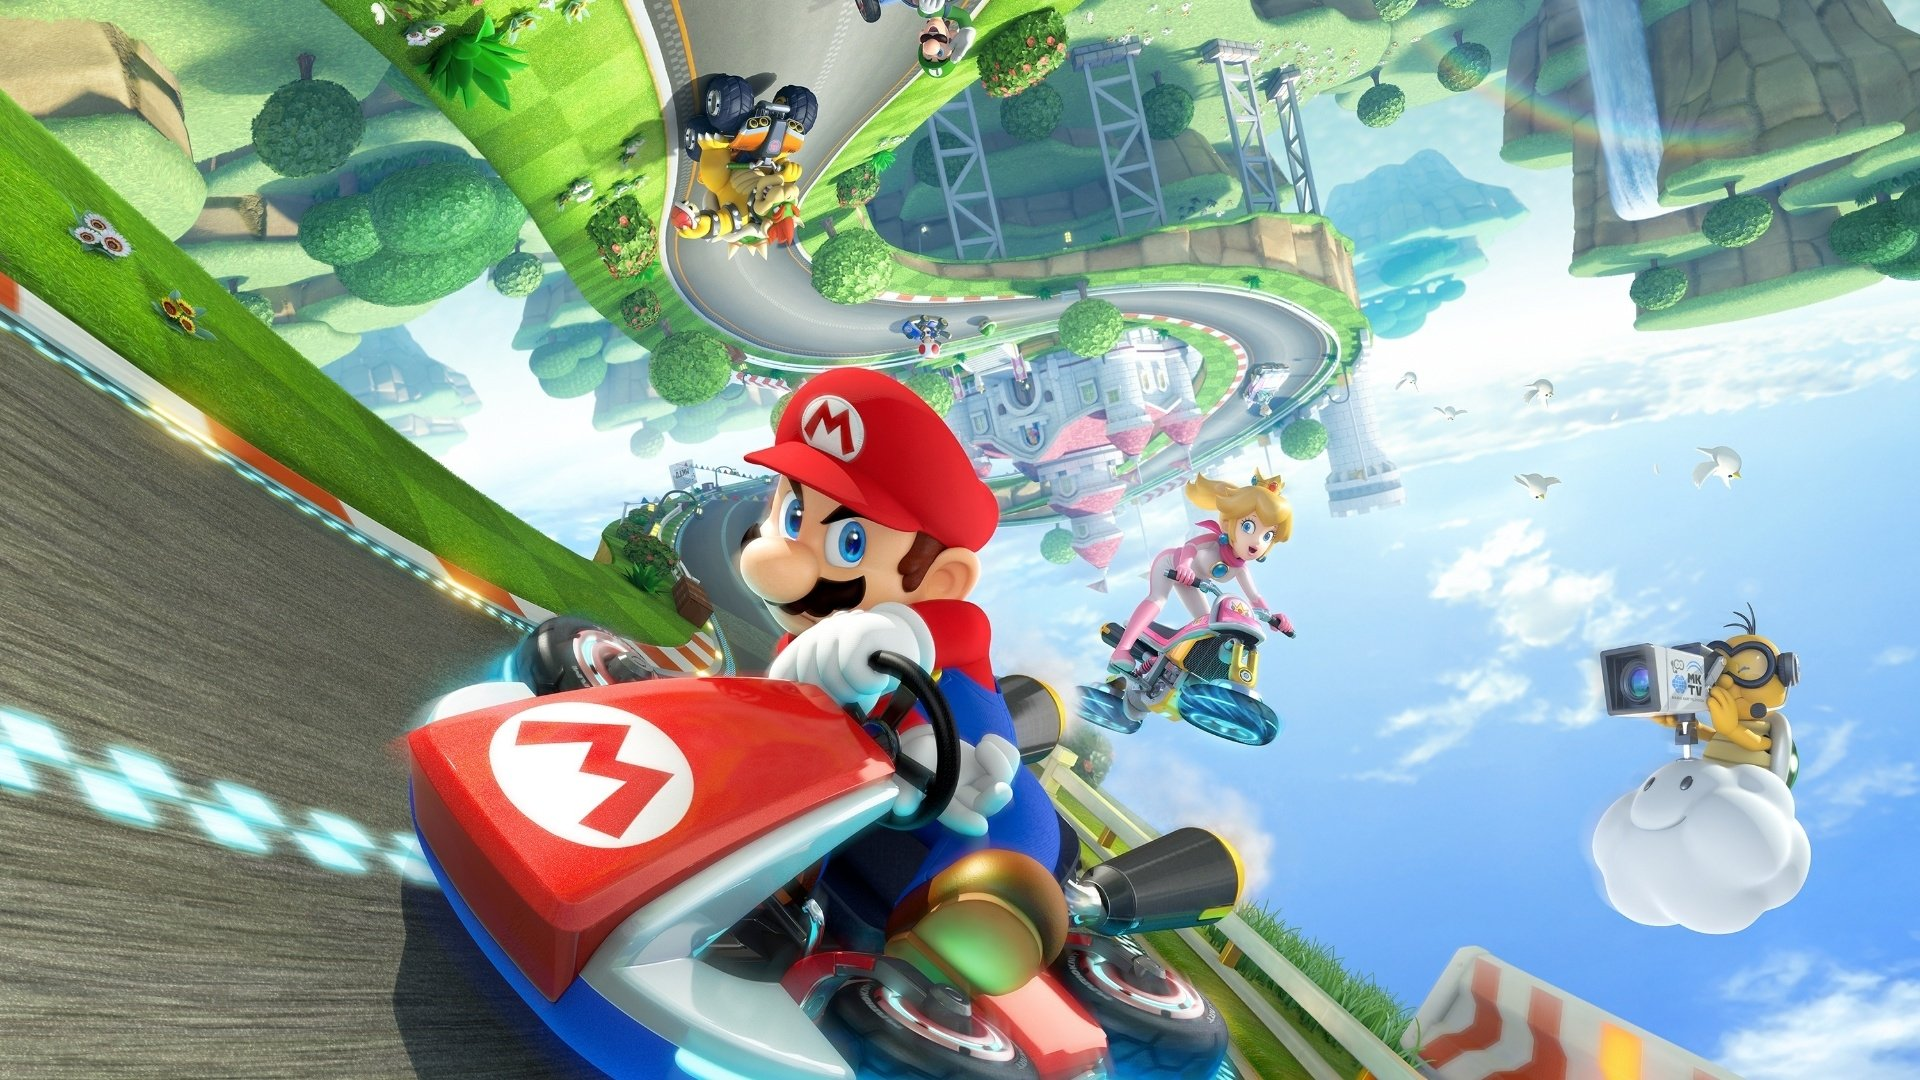 Mario Kart Wallpapers